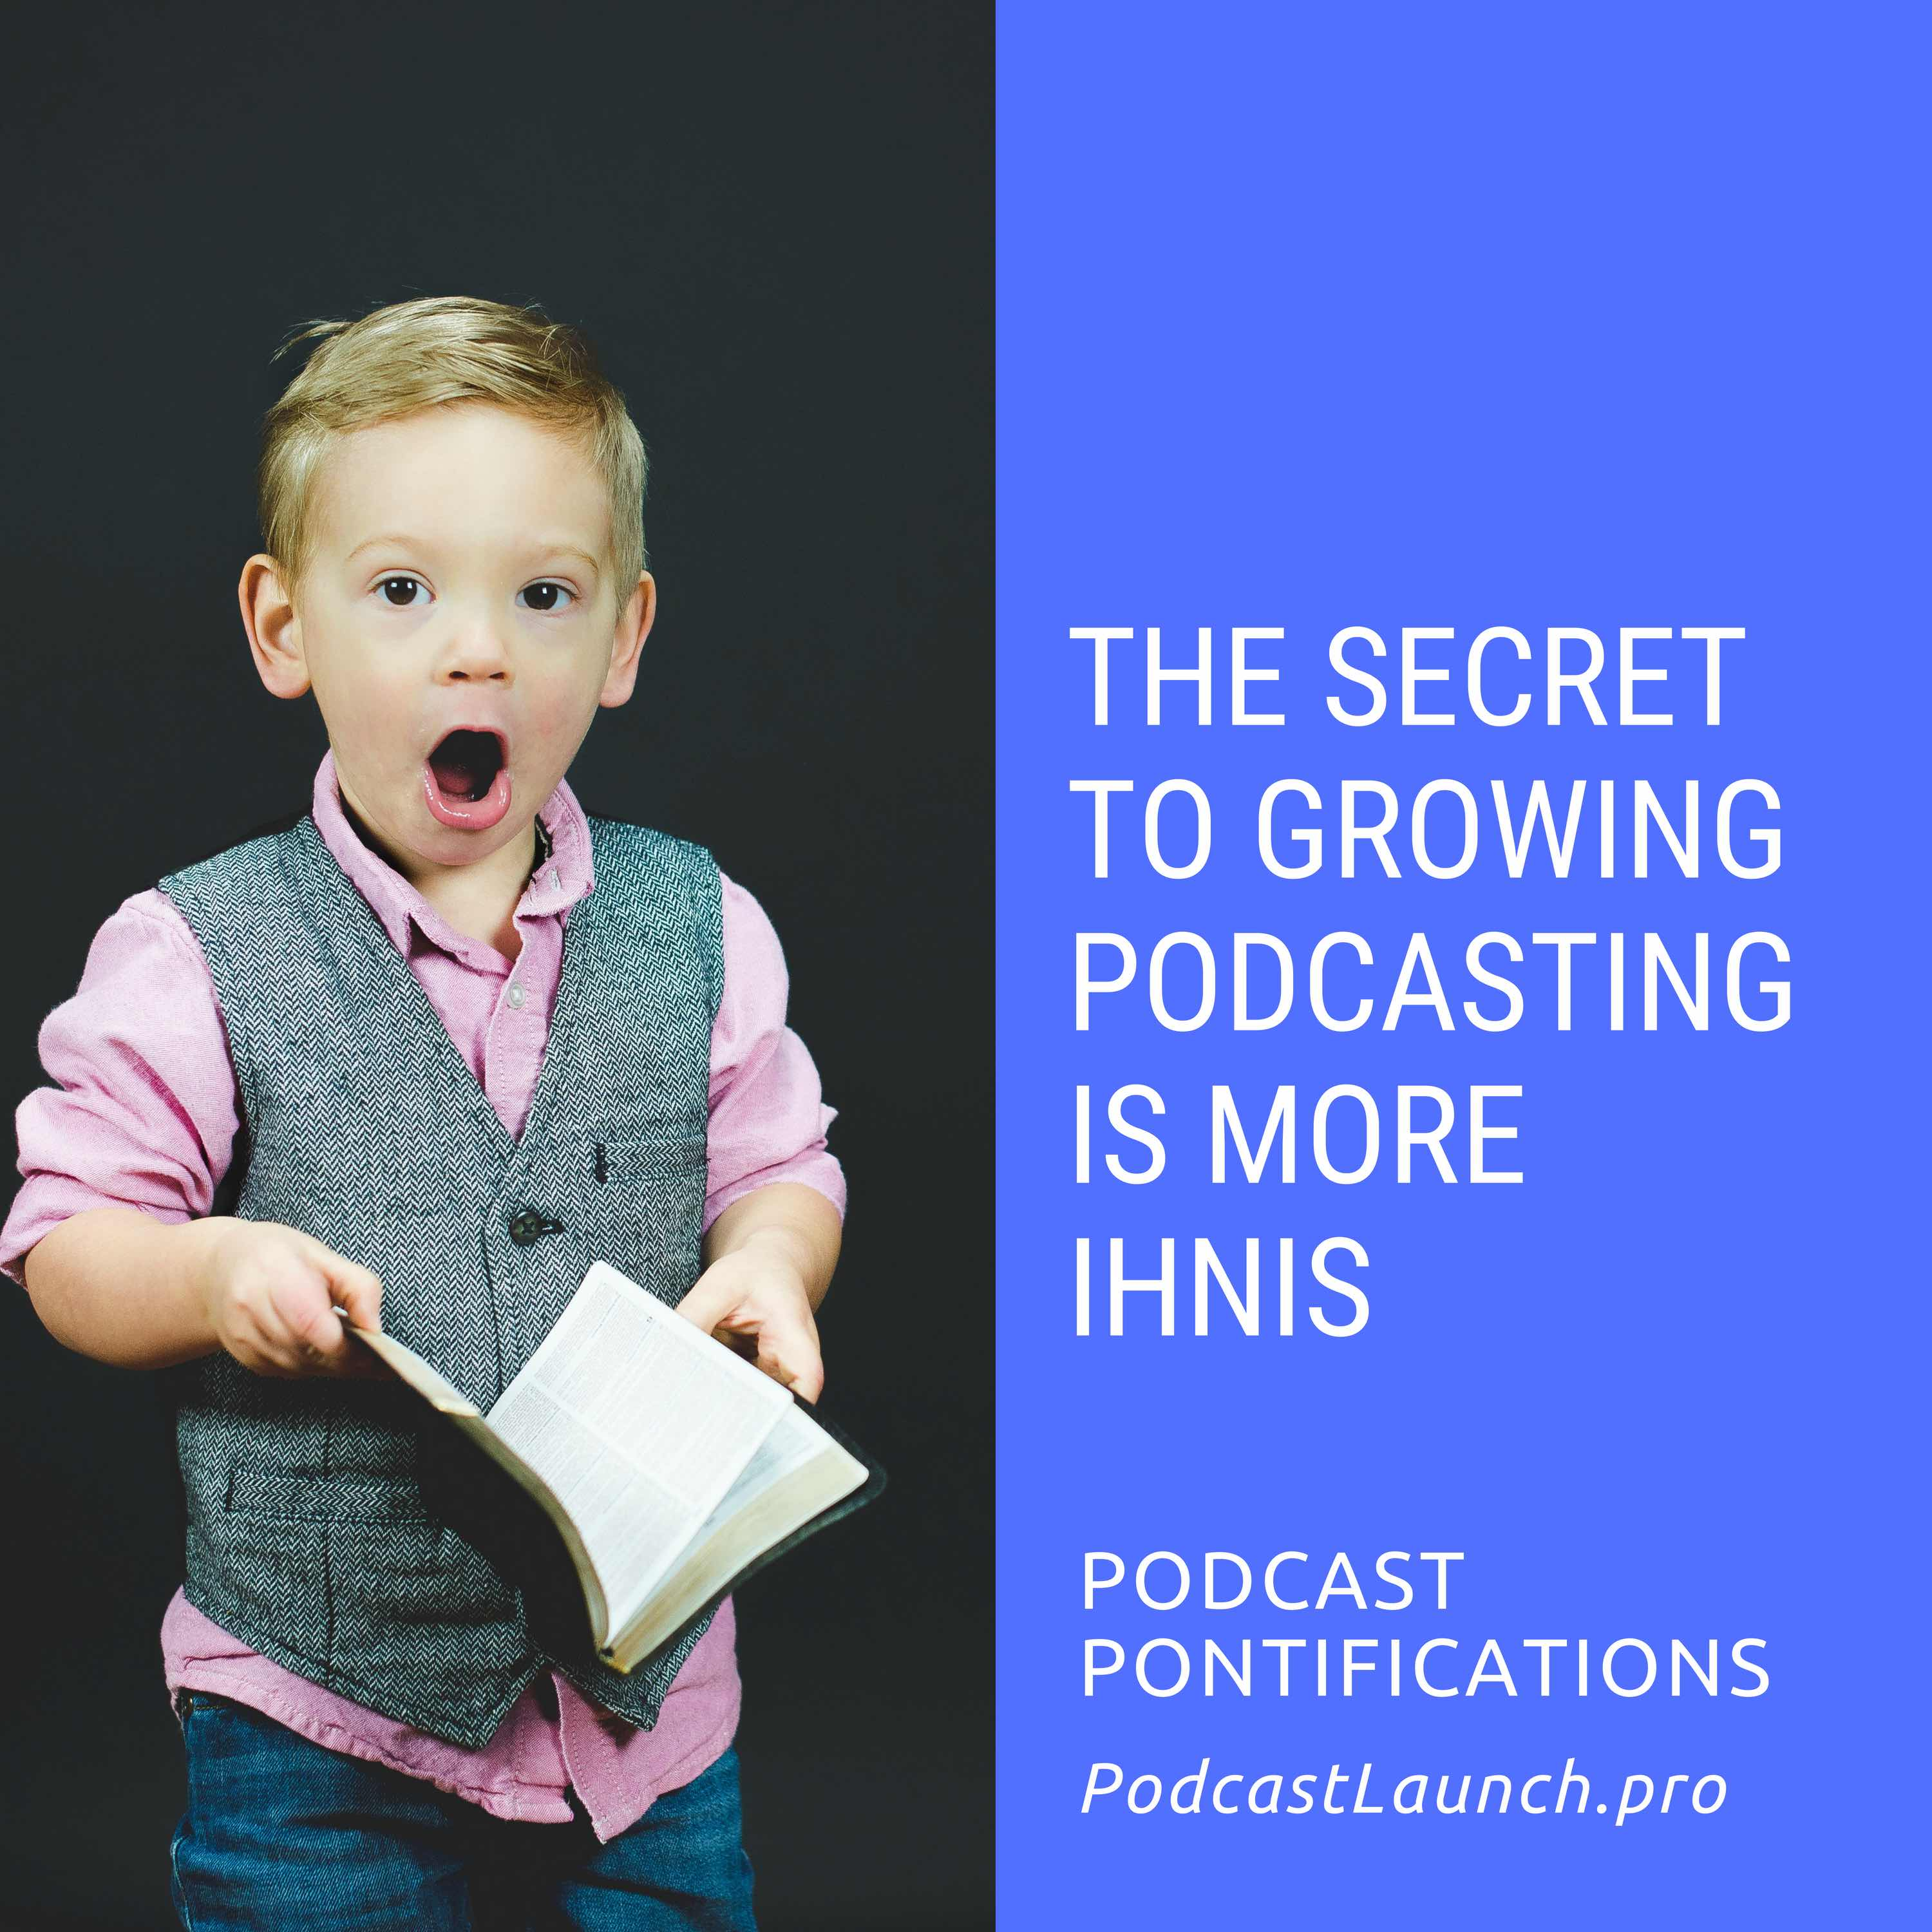 The Secret To Growing Podcasting Is More IHNIs